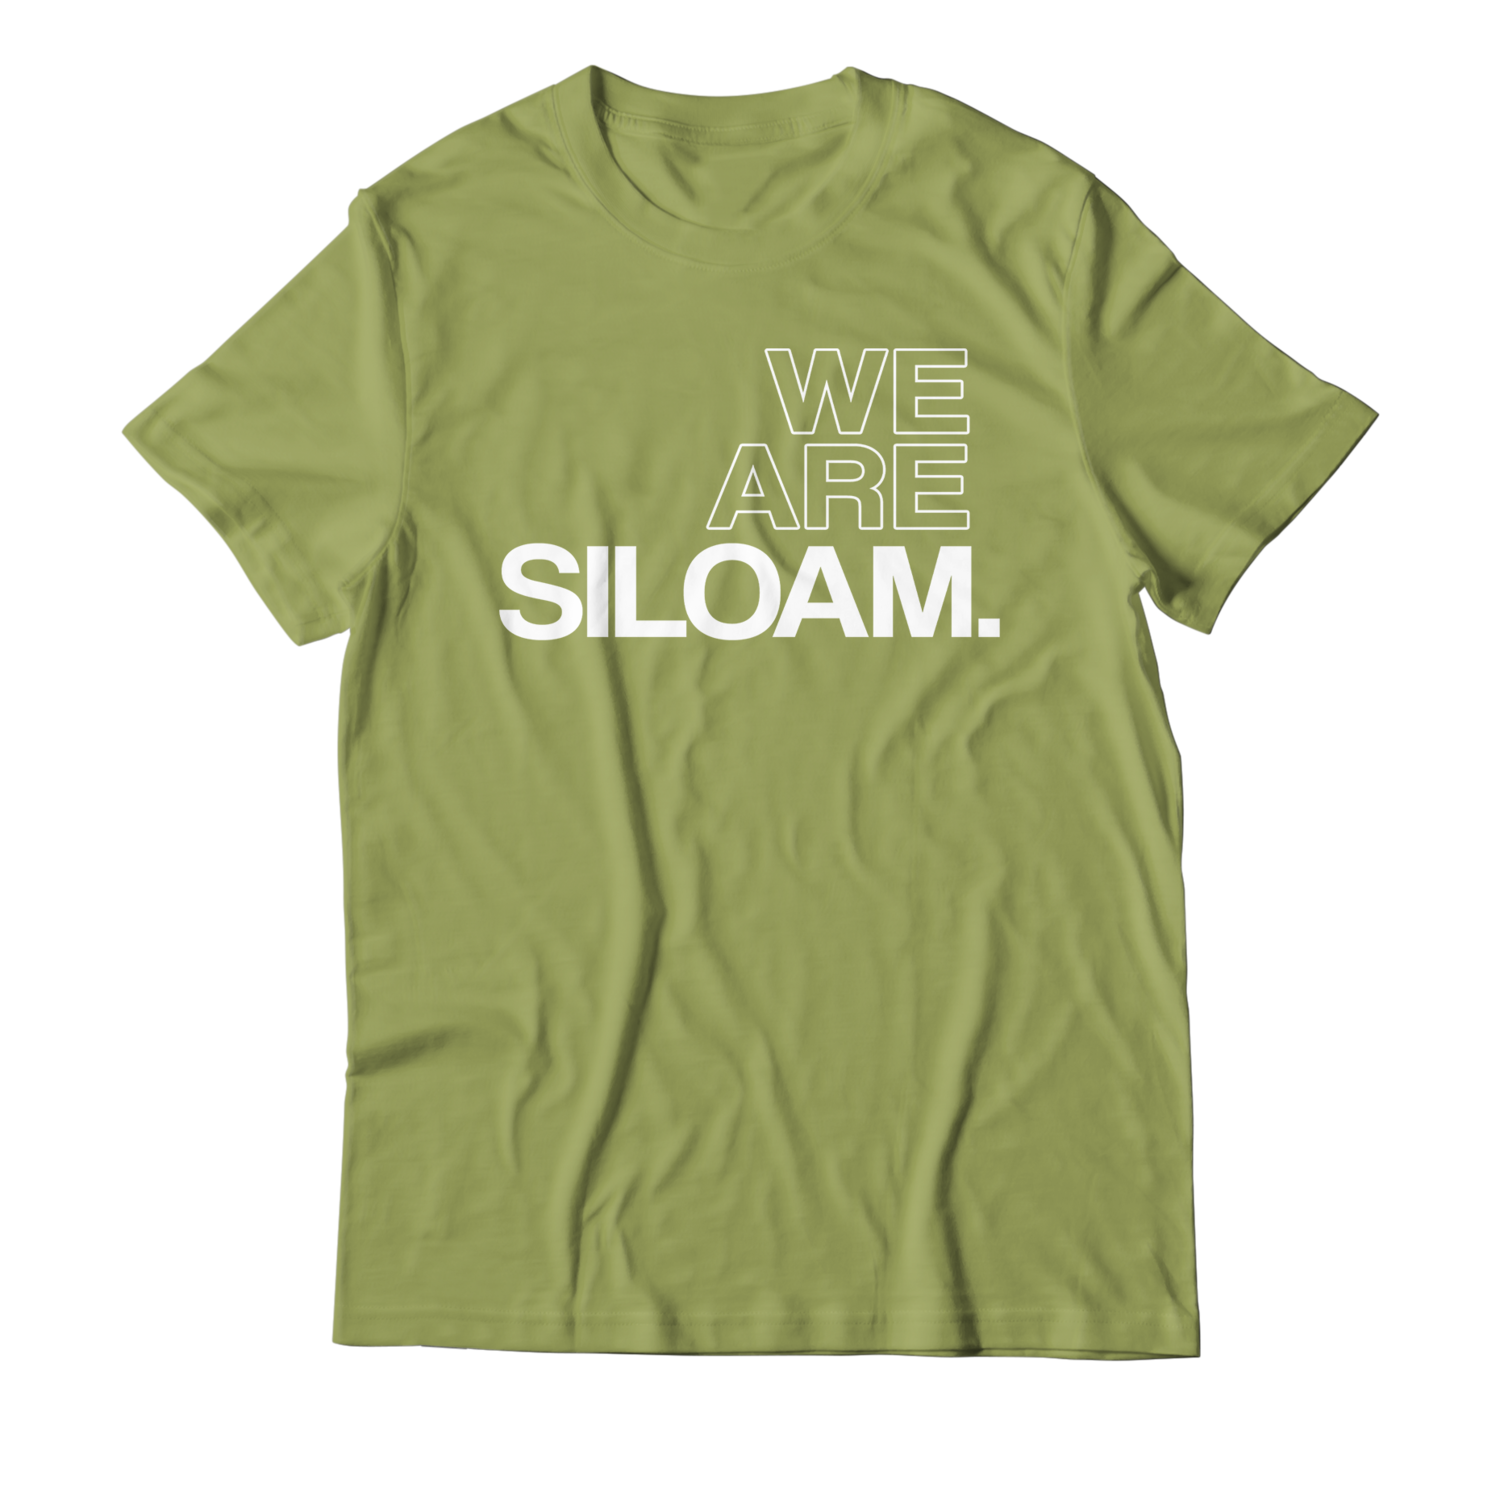 We Are Siloam T-shirt - Olive Green & White